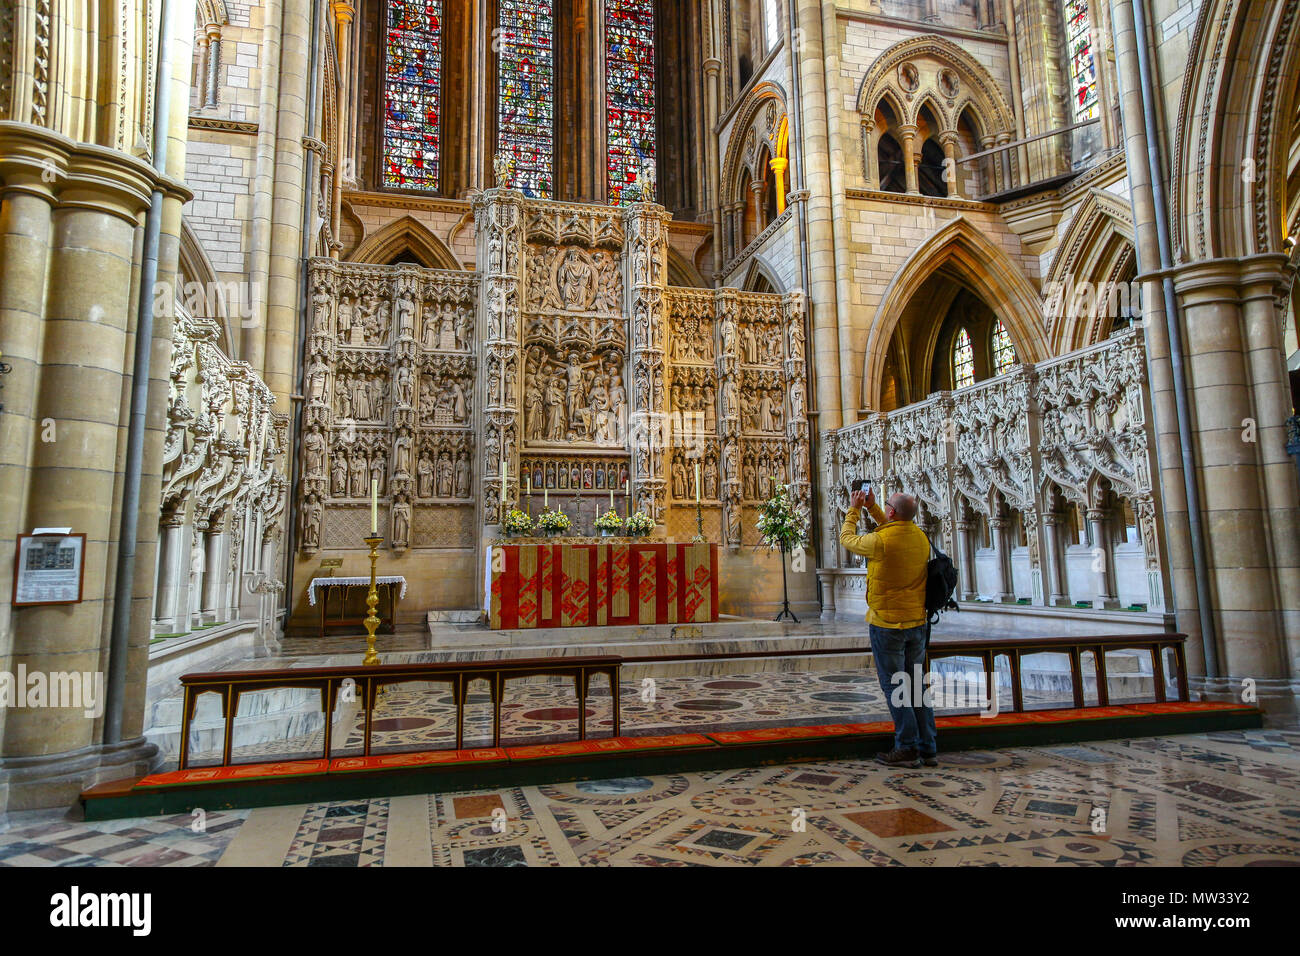 Someone taking a photo of the Altar inside The Cathedral of the Blessed Virgin Mary, Truro, Cornwall, England, UK - Stock Image